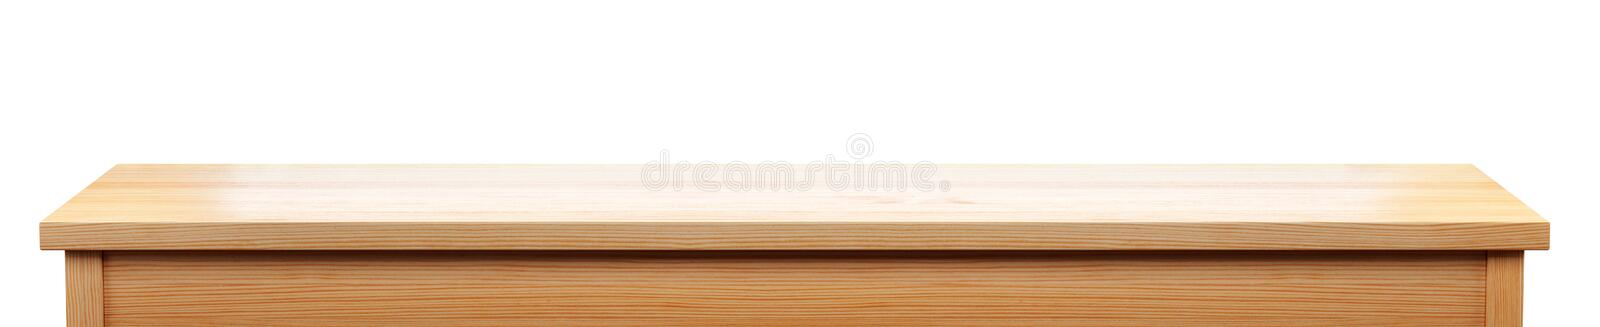 Long pine wood tabletop isolated on white background, 3d rendering royalty free illustration